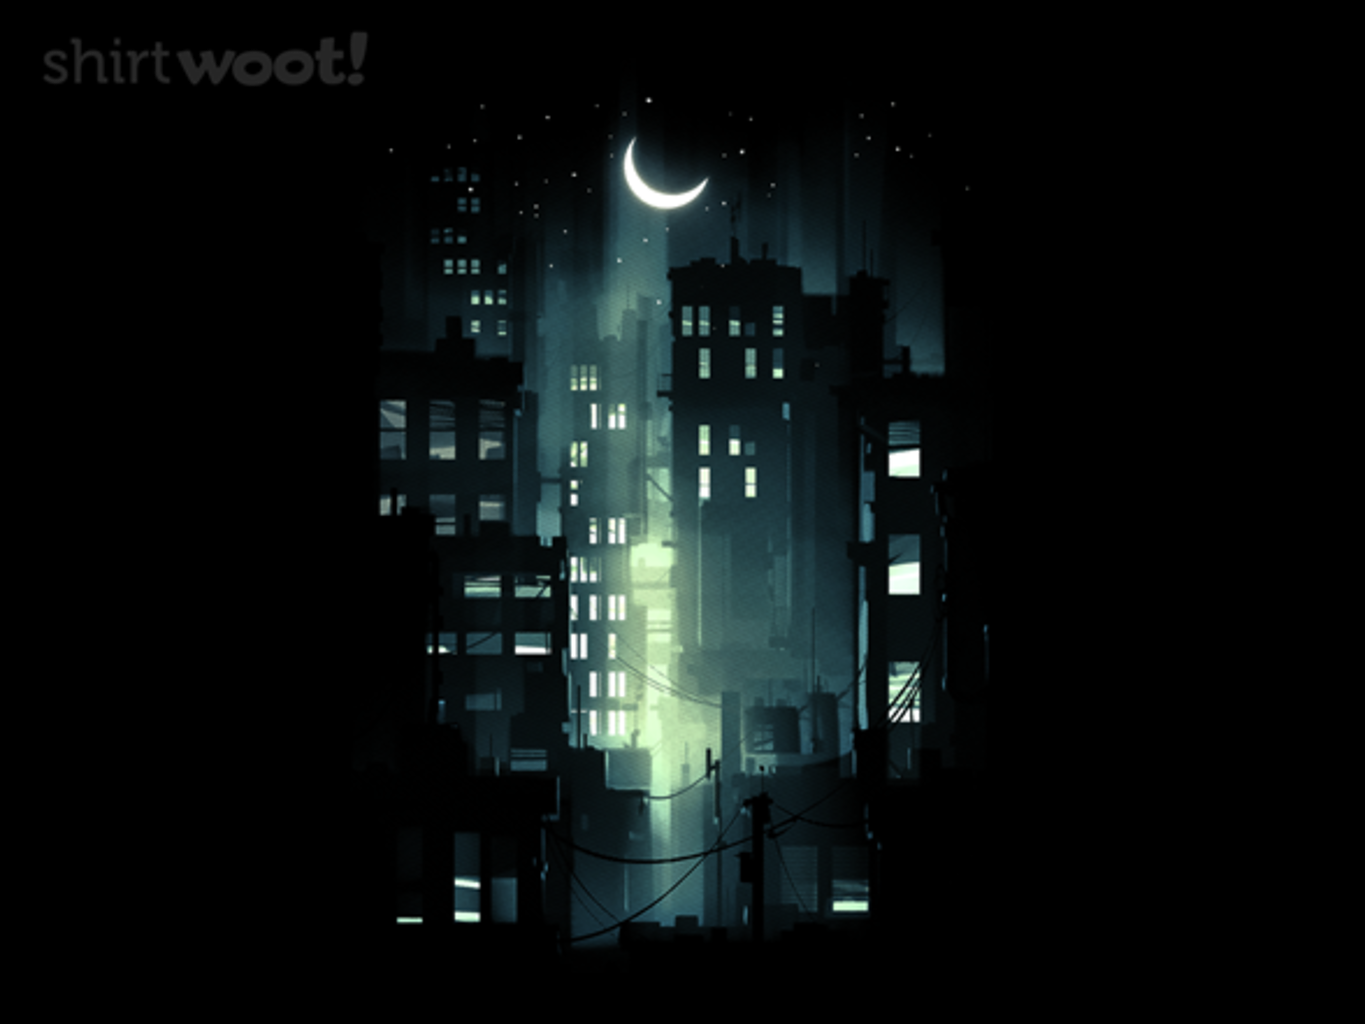 Woot!: Midnight in the Moonlight